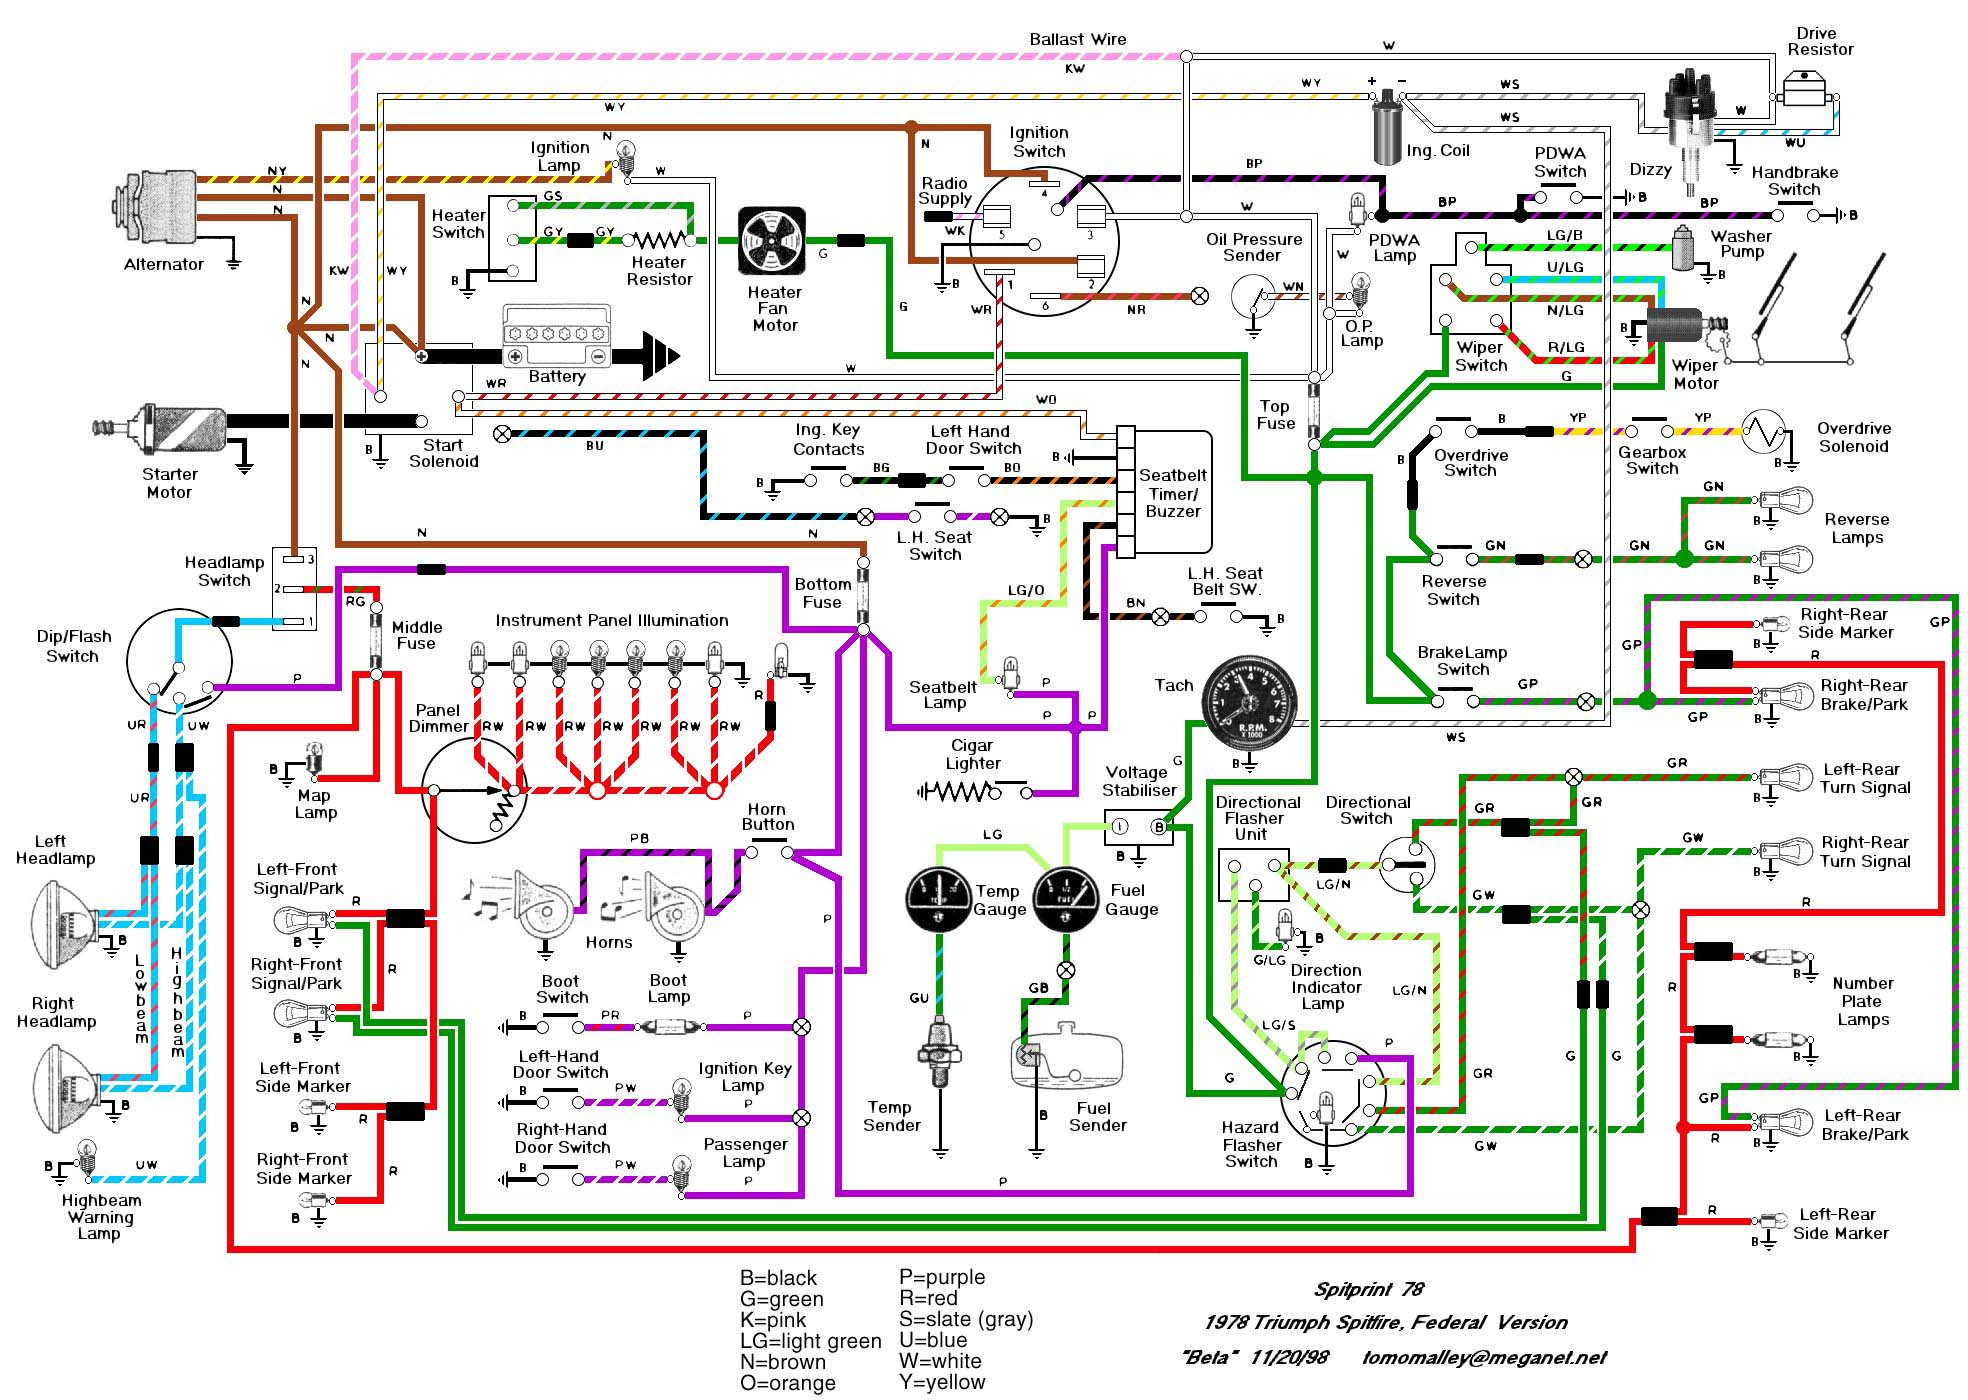 78diagram wiring schematics and diagrams triumph spitfire, gt6, herald 1979 triumph spitfire wiring diagram at fashall.co